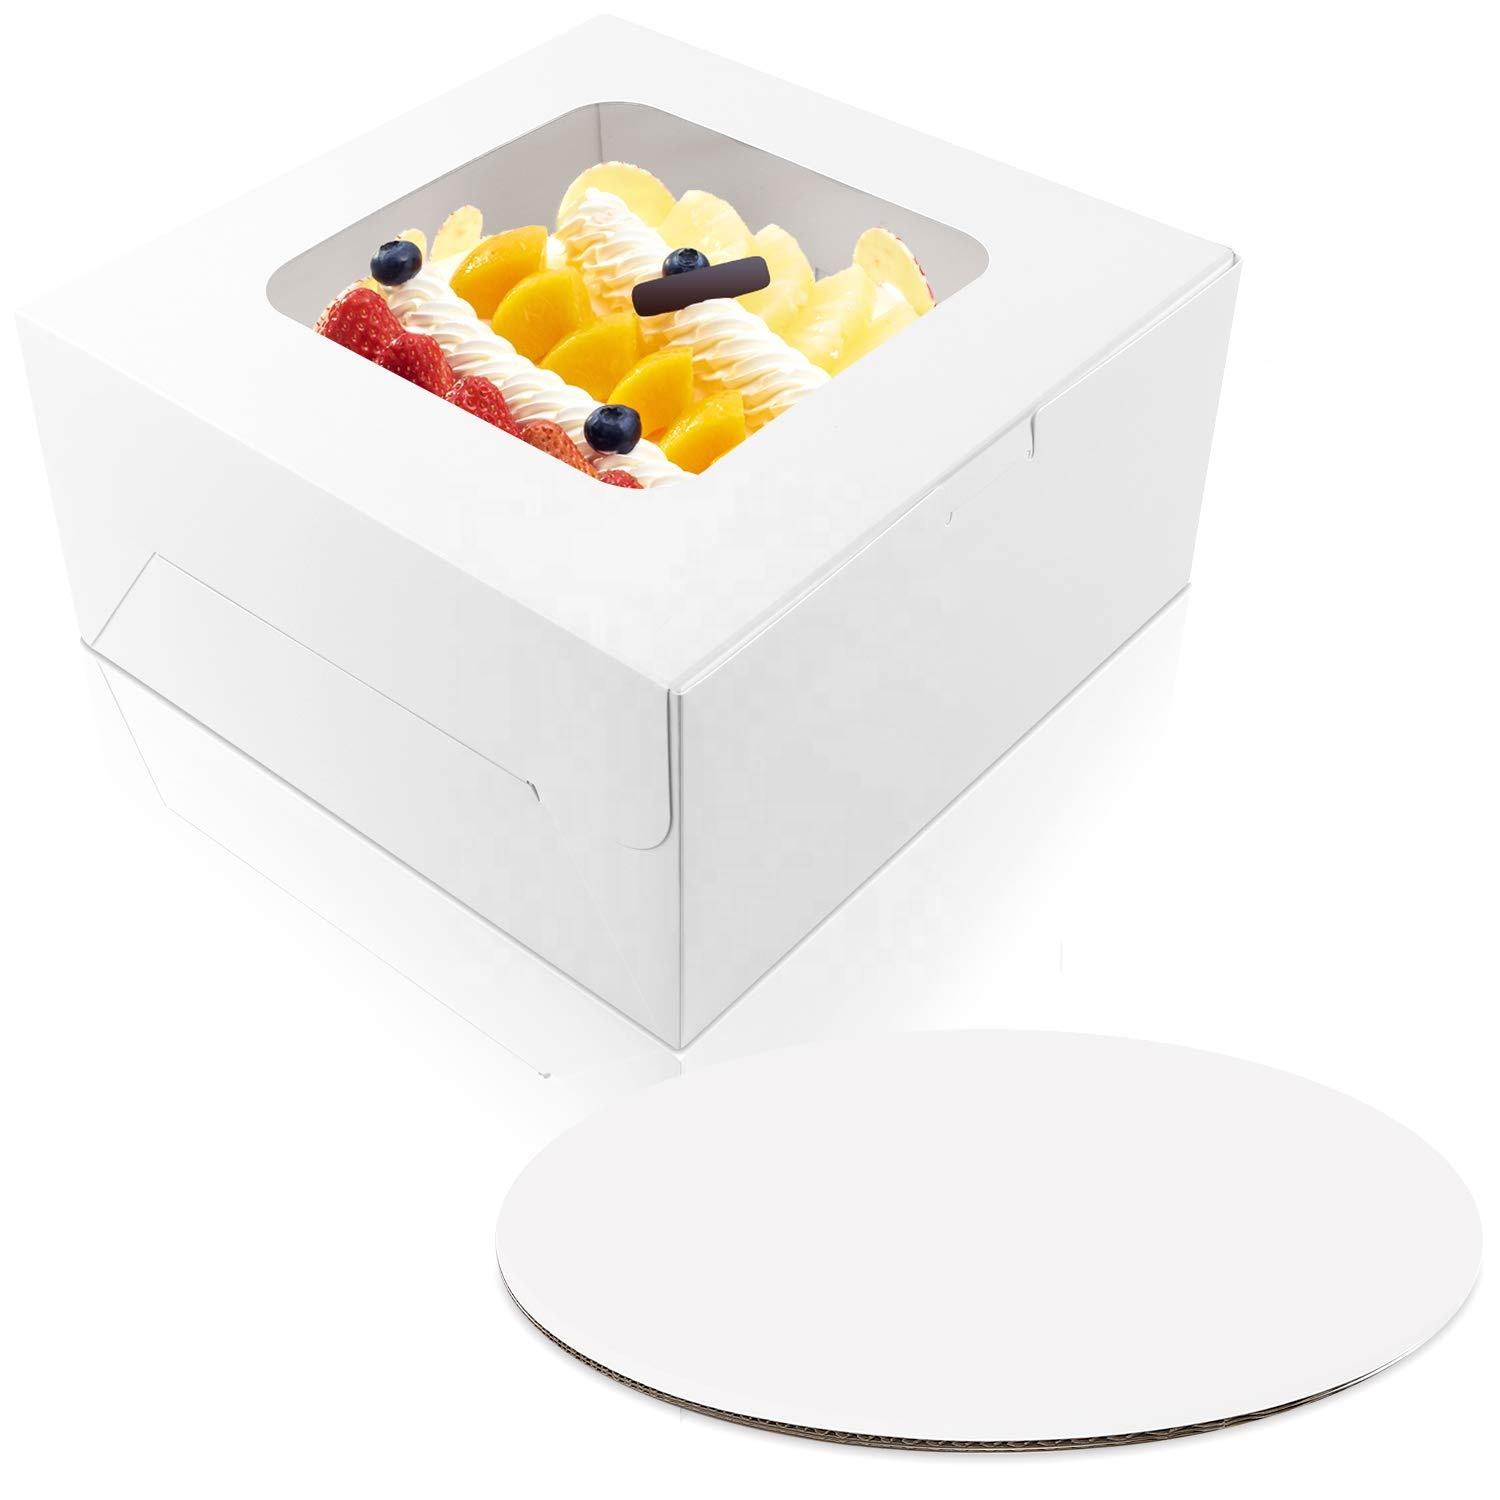 Cake Bakery Boxes with Window and 10 inches Round Cake Boards, gift Boxes for Cakes, Pastries, Cookies, Pie